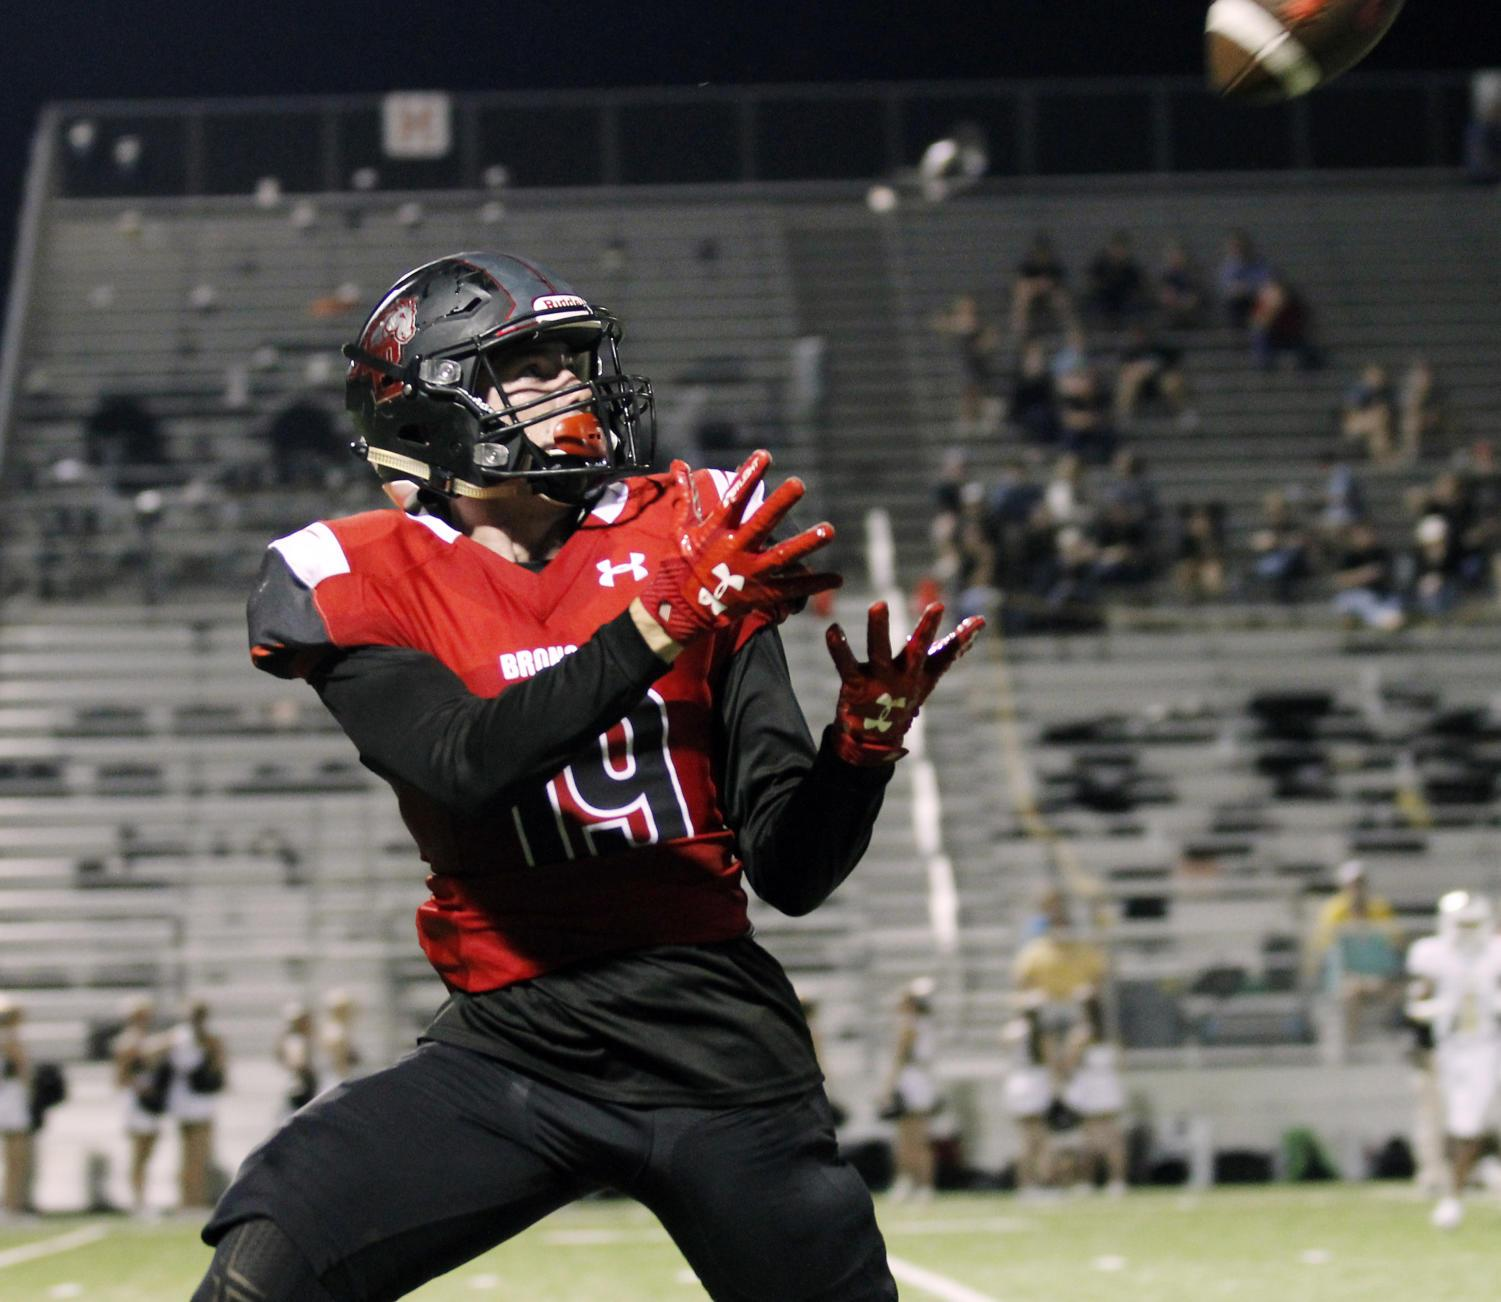 Junior Nathan Rooney receives a pass during the game against Wichita Falls on Friday, Sept. 1.